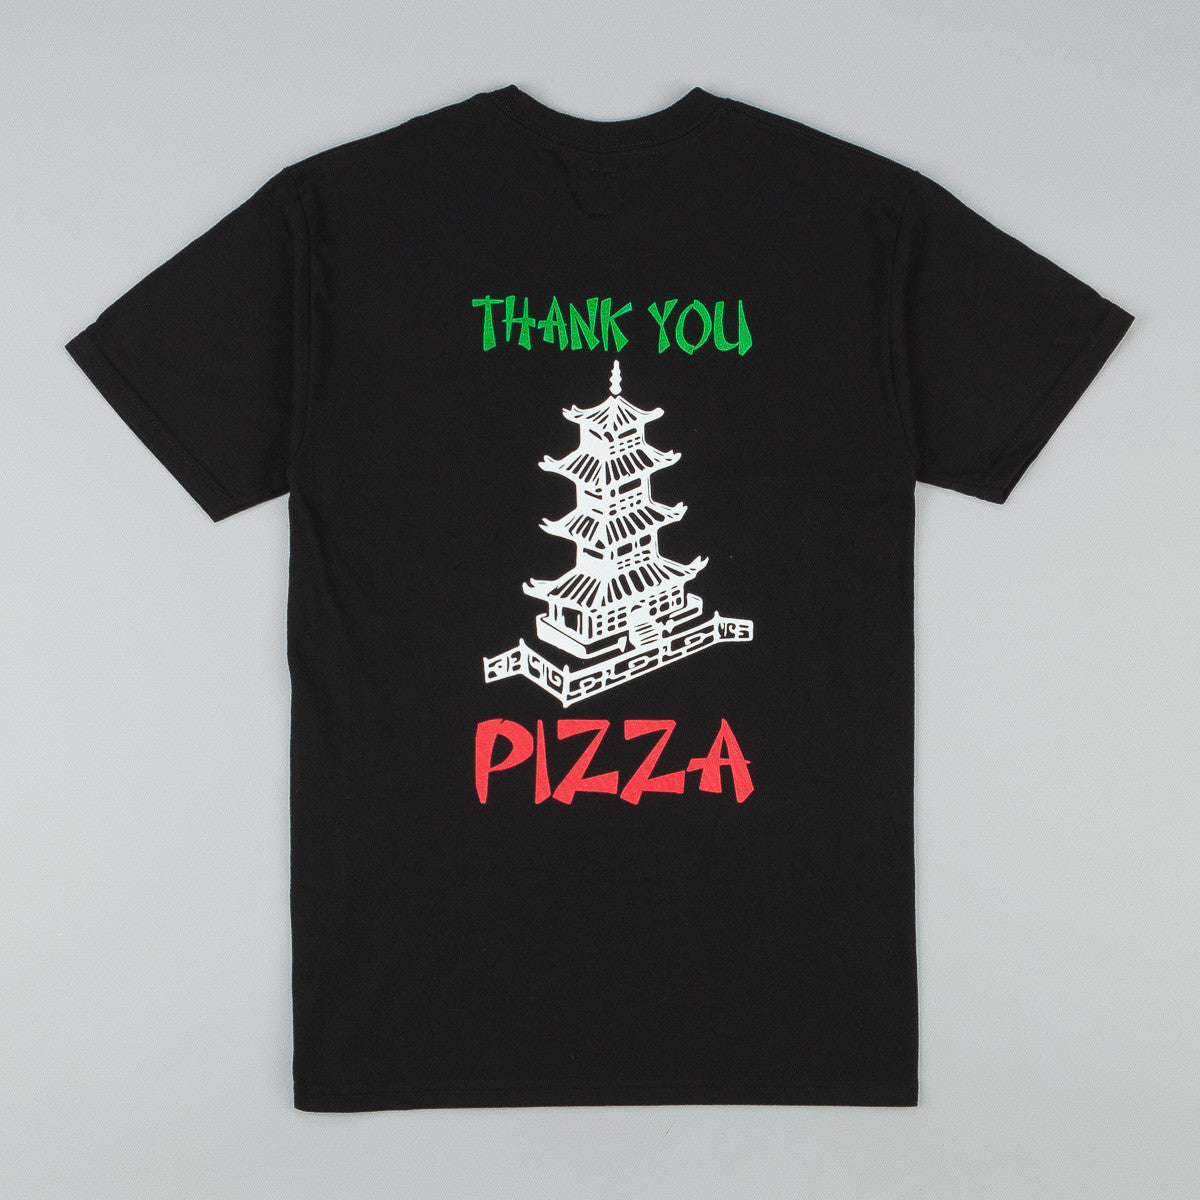 Pizza Skateboards Take Out T-Shirt - Black